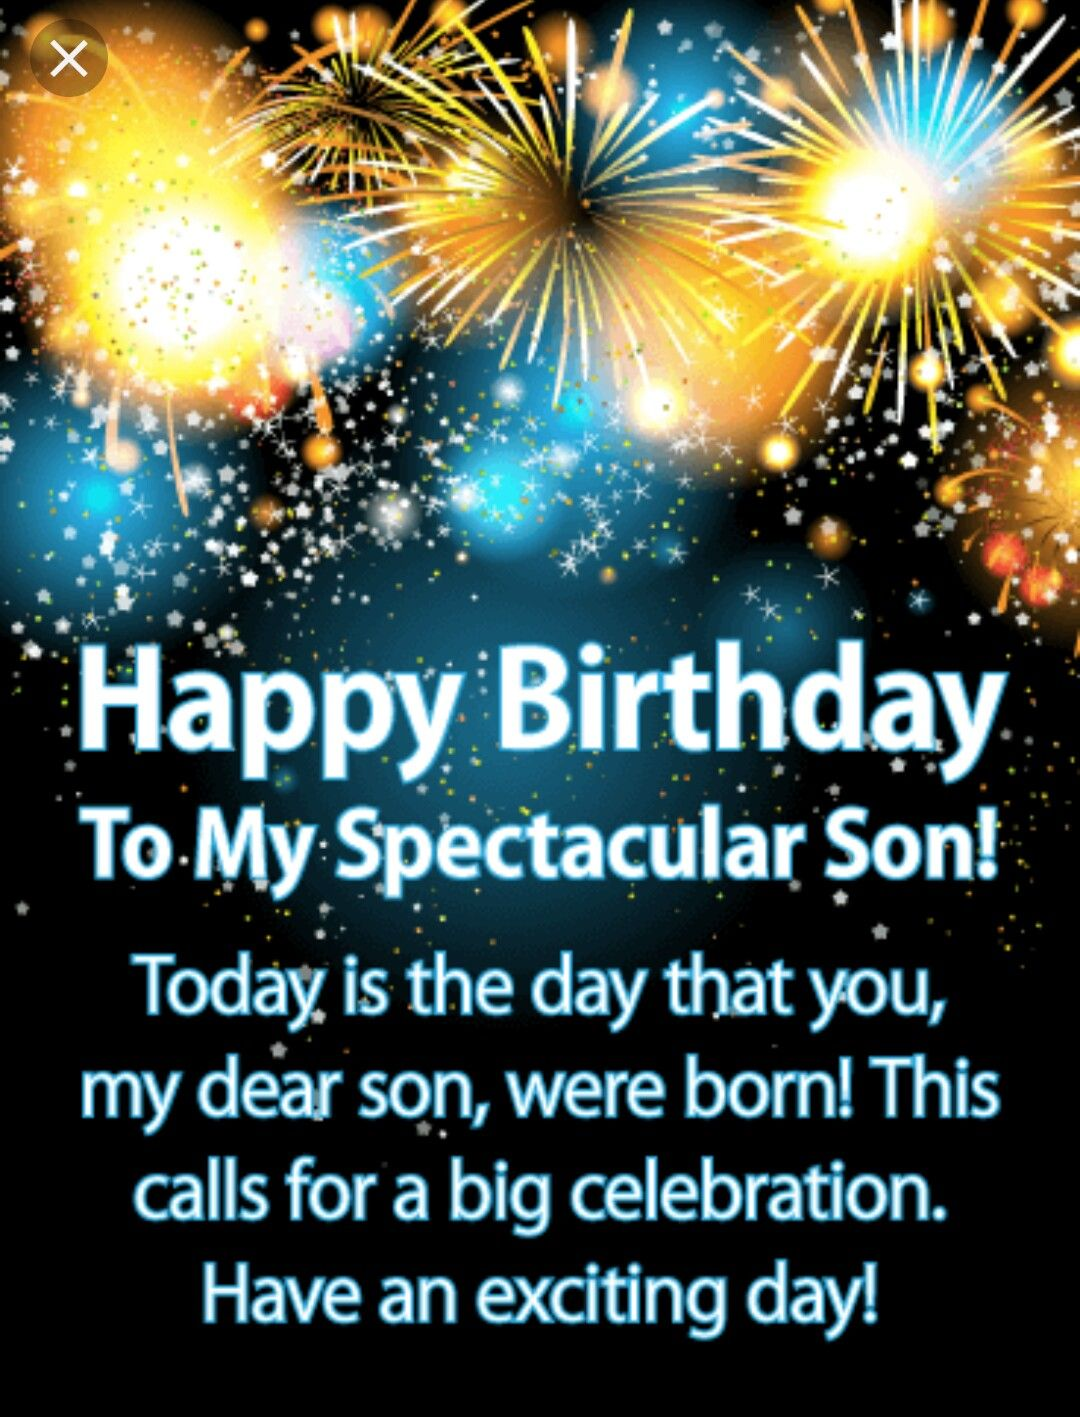 Image by suzanne koopman on abc greeting cards birthday